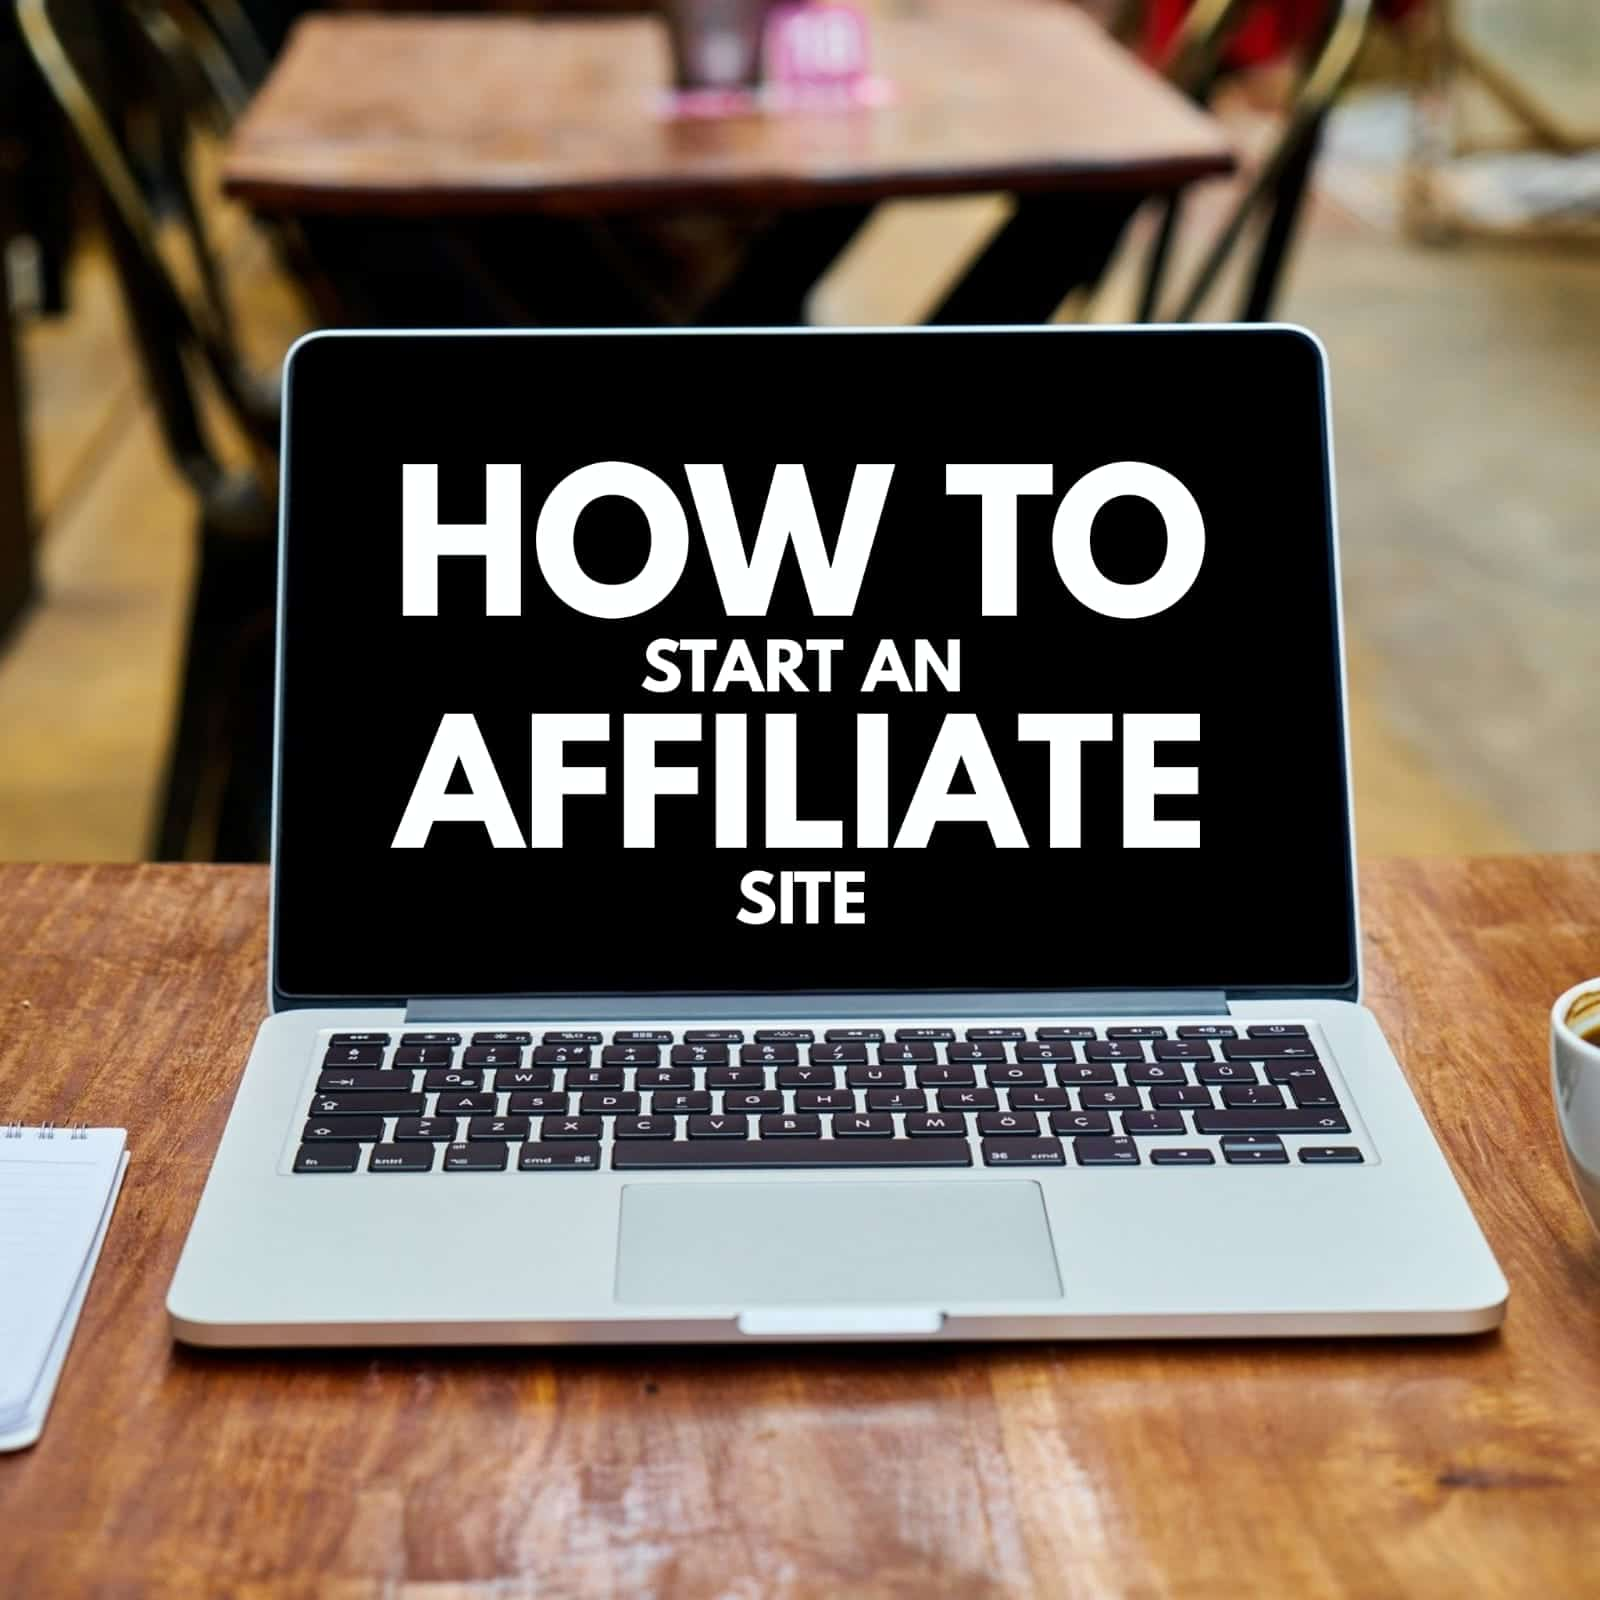 How to start an affiliate site